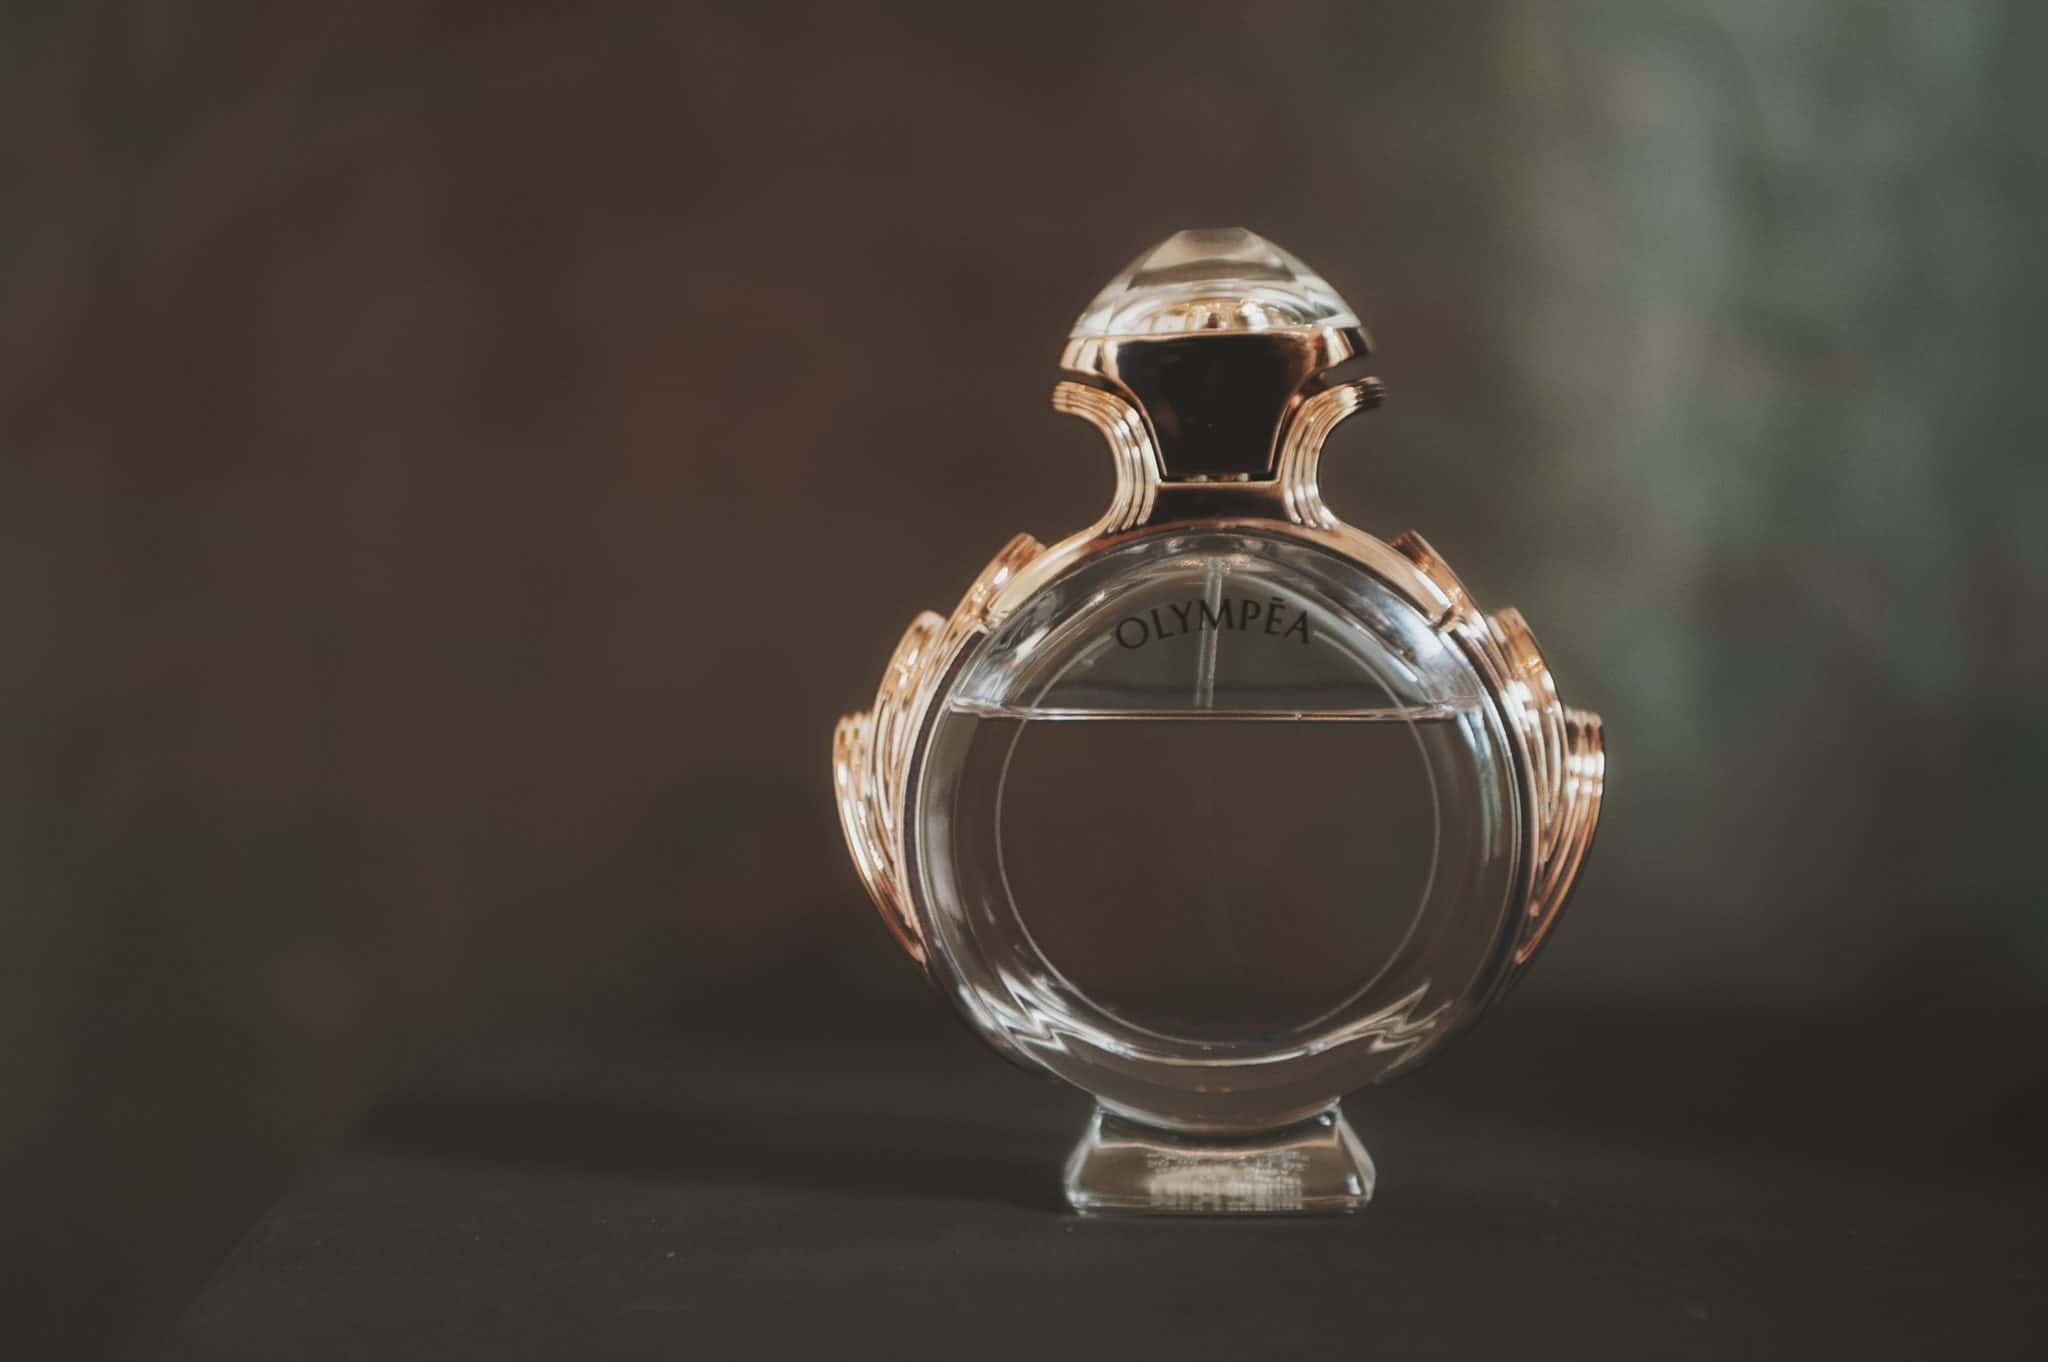 Bride's perfume bottle on a black stand